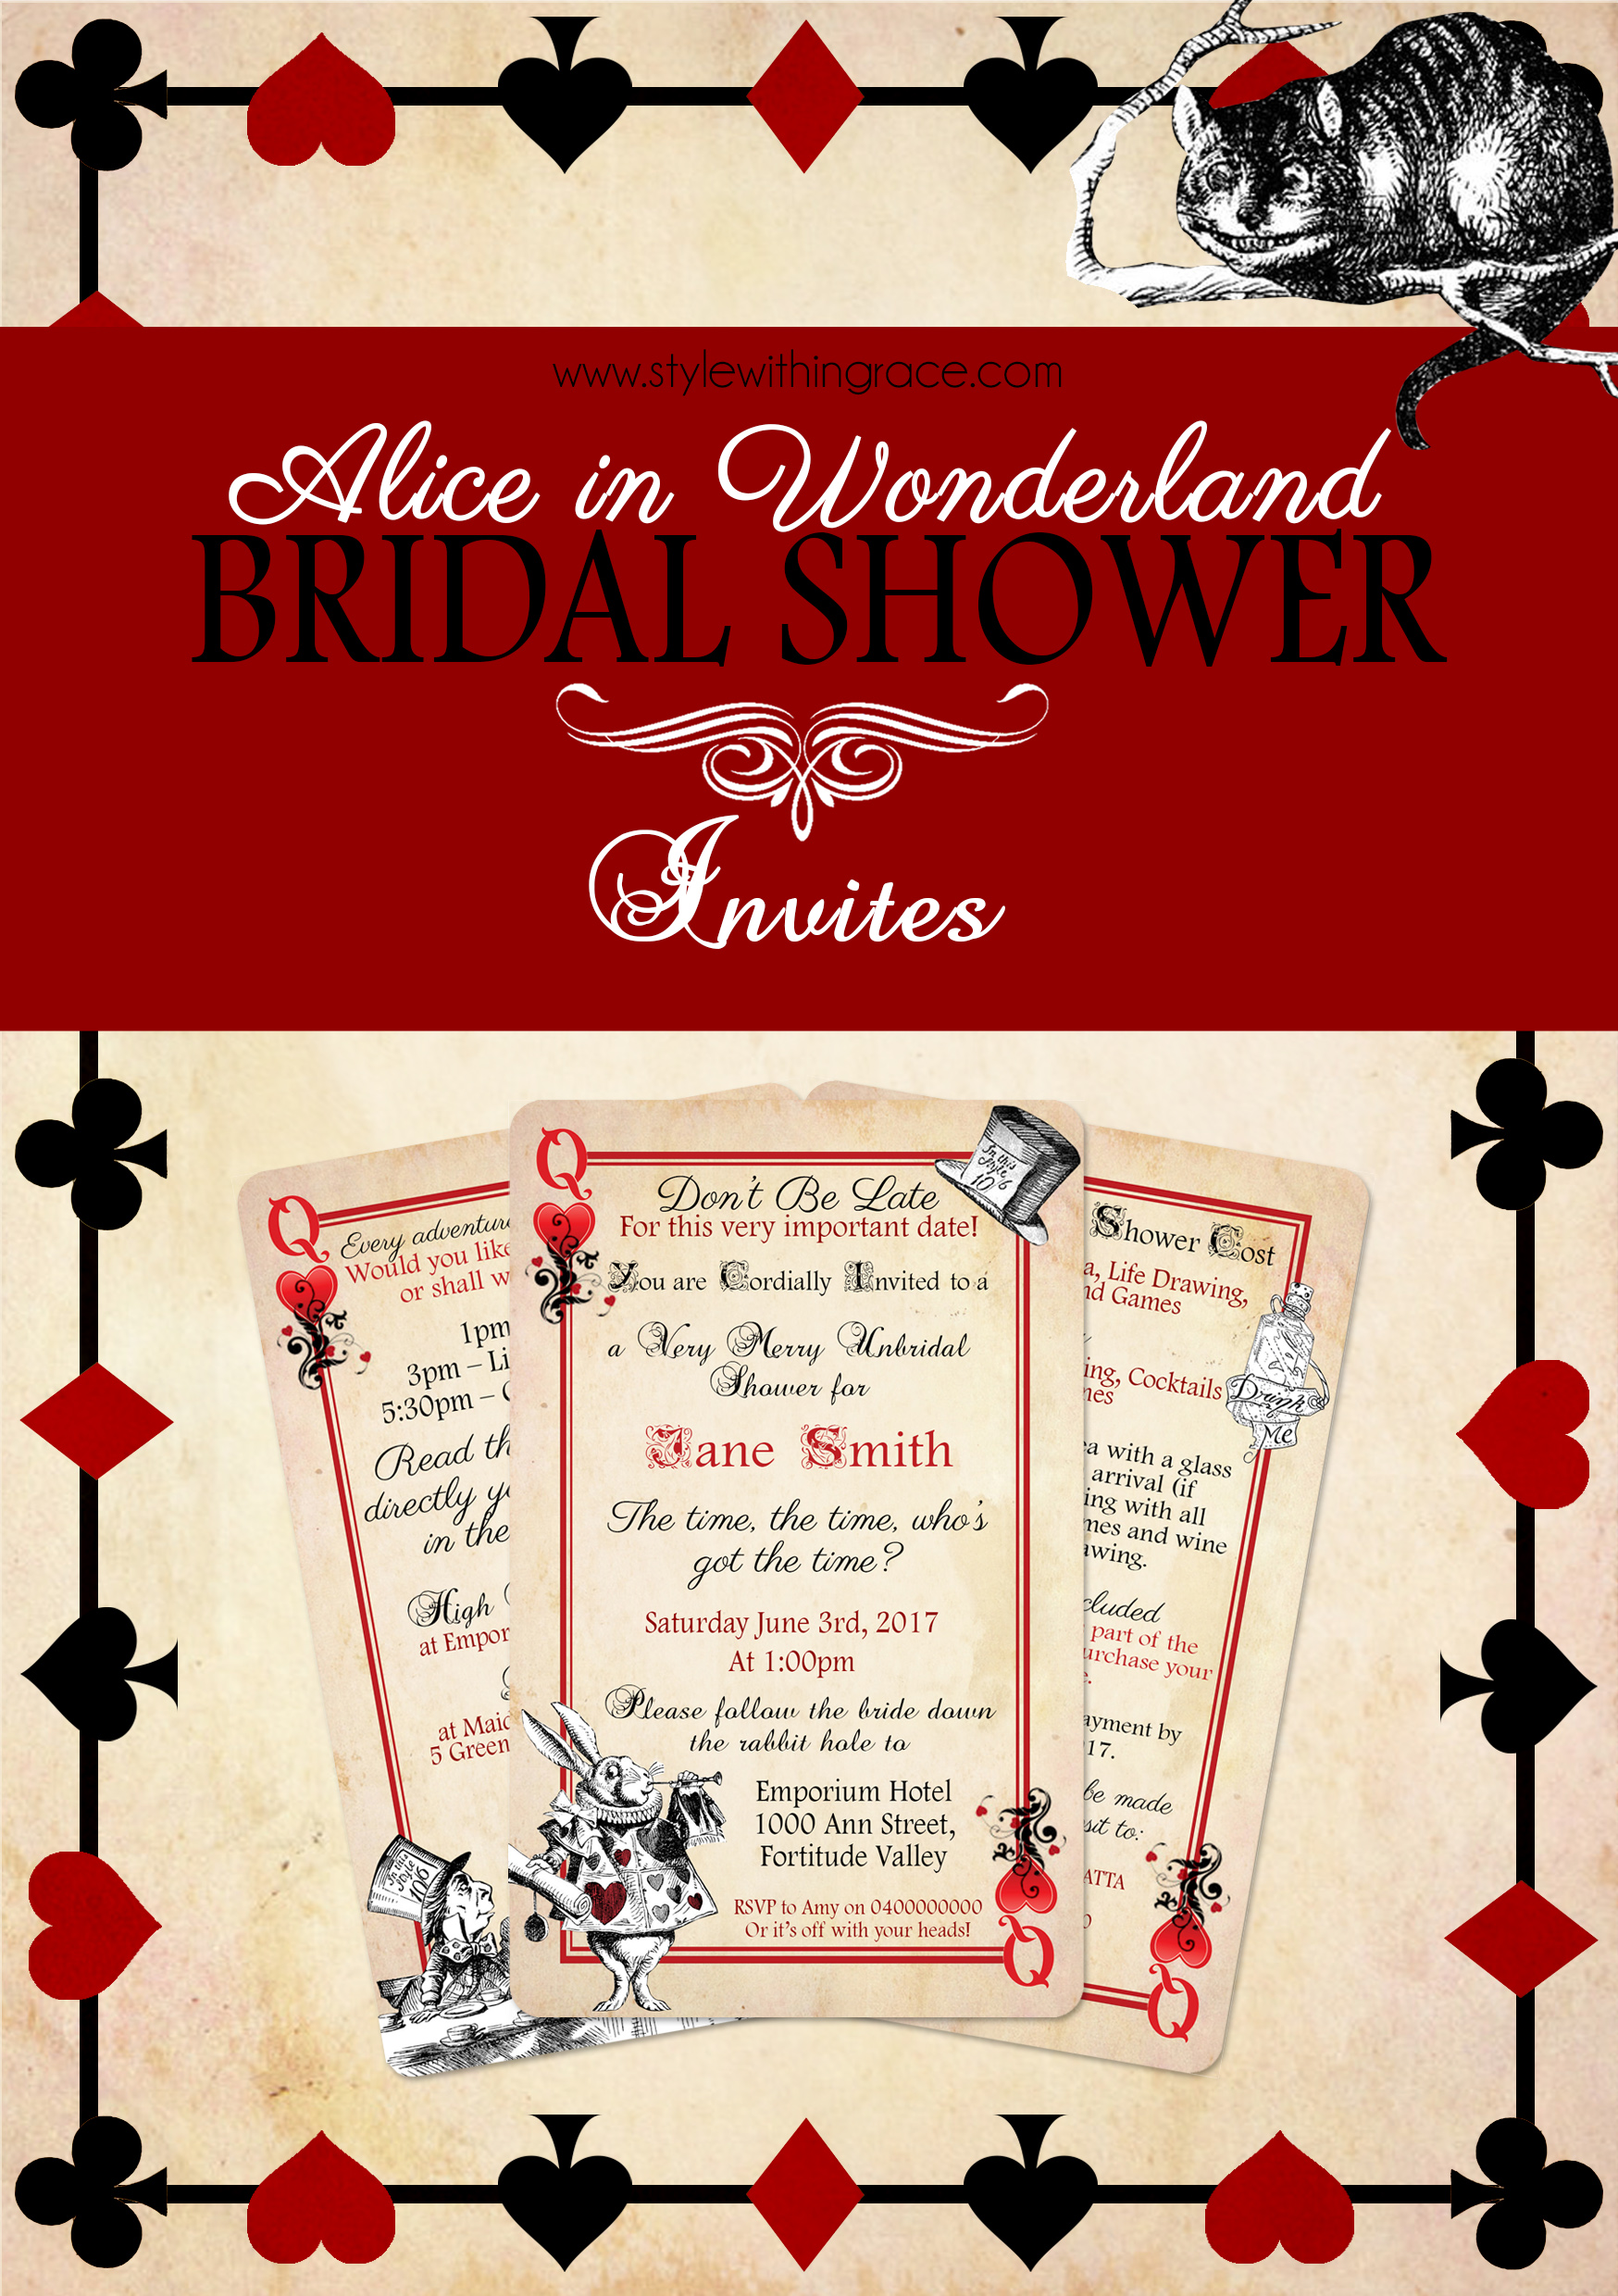 Alice In Wonderland Bridal Shower Invitation Template - More ...